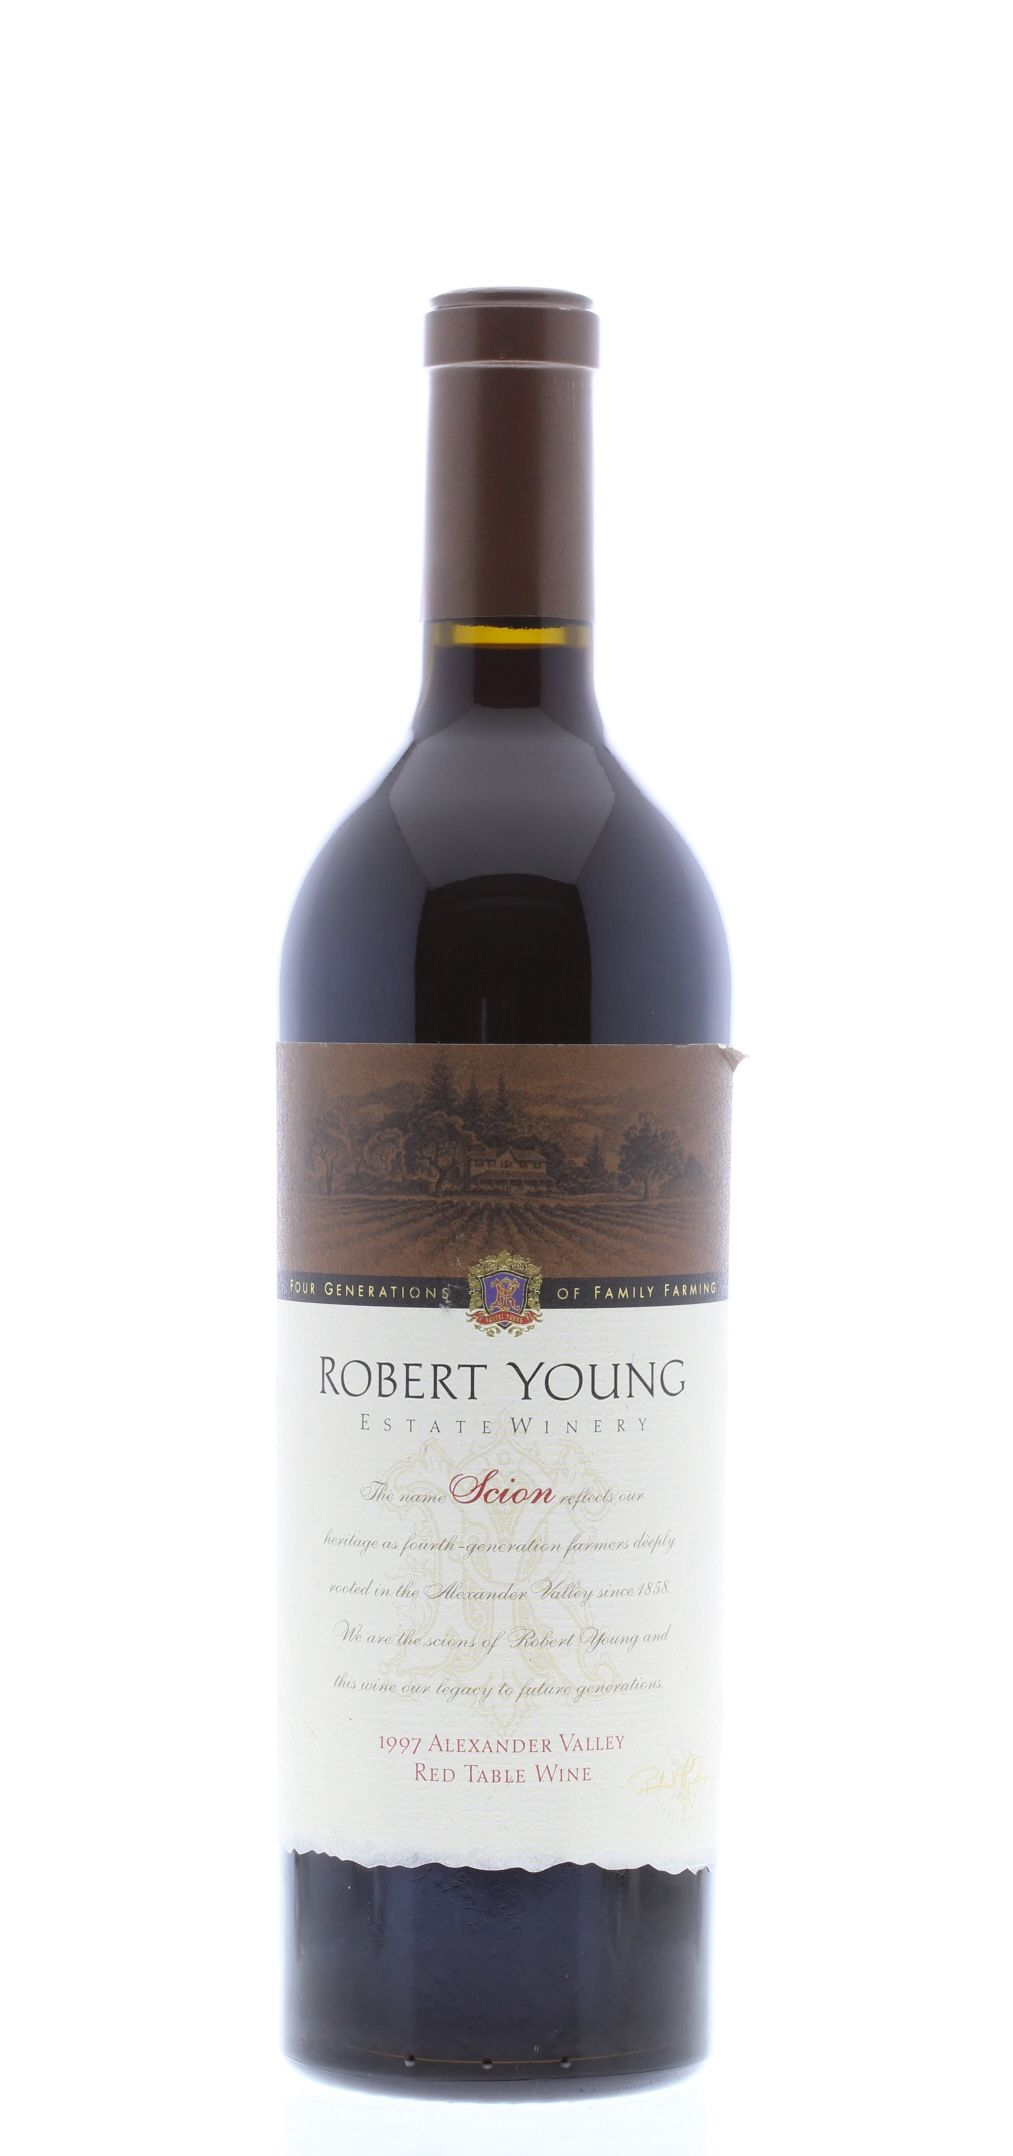 Robert Young Scion Cabernet Sauvignon 1997 Front Bottle Shot